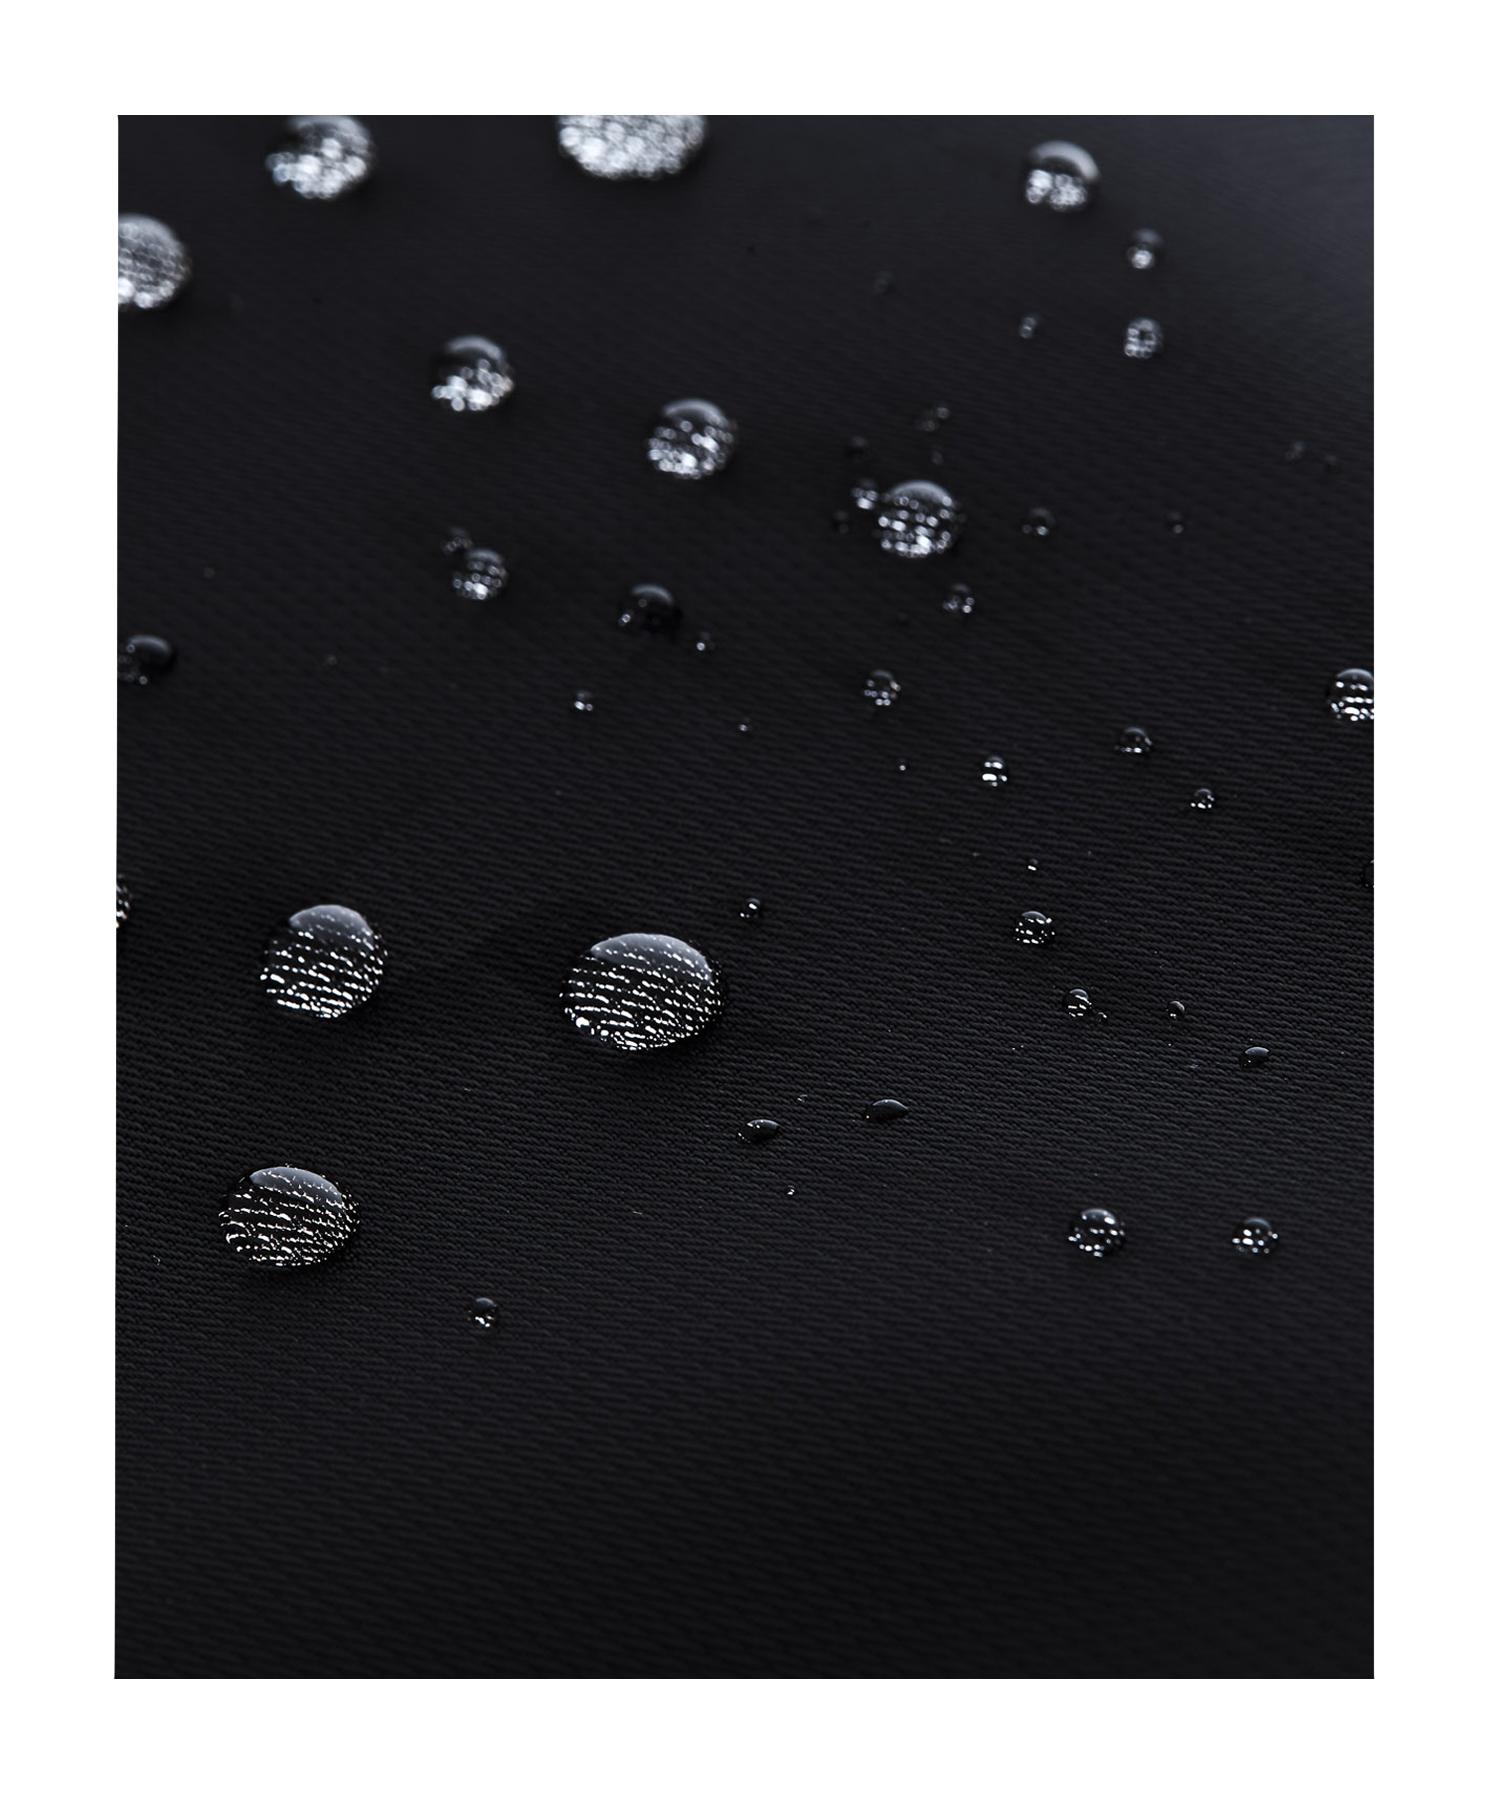 Krimcode water repellent technology